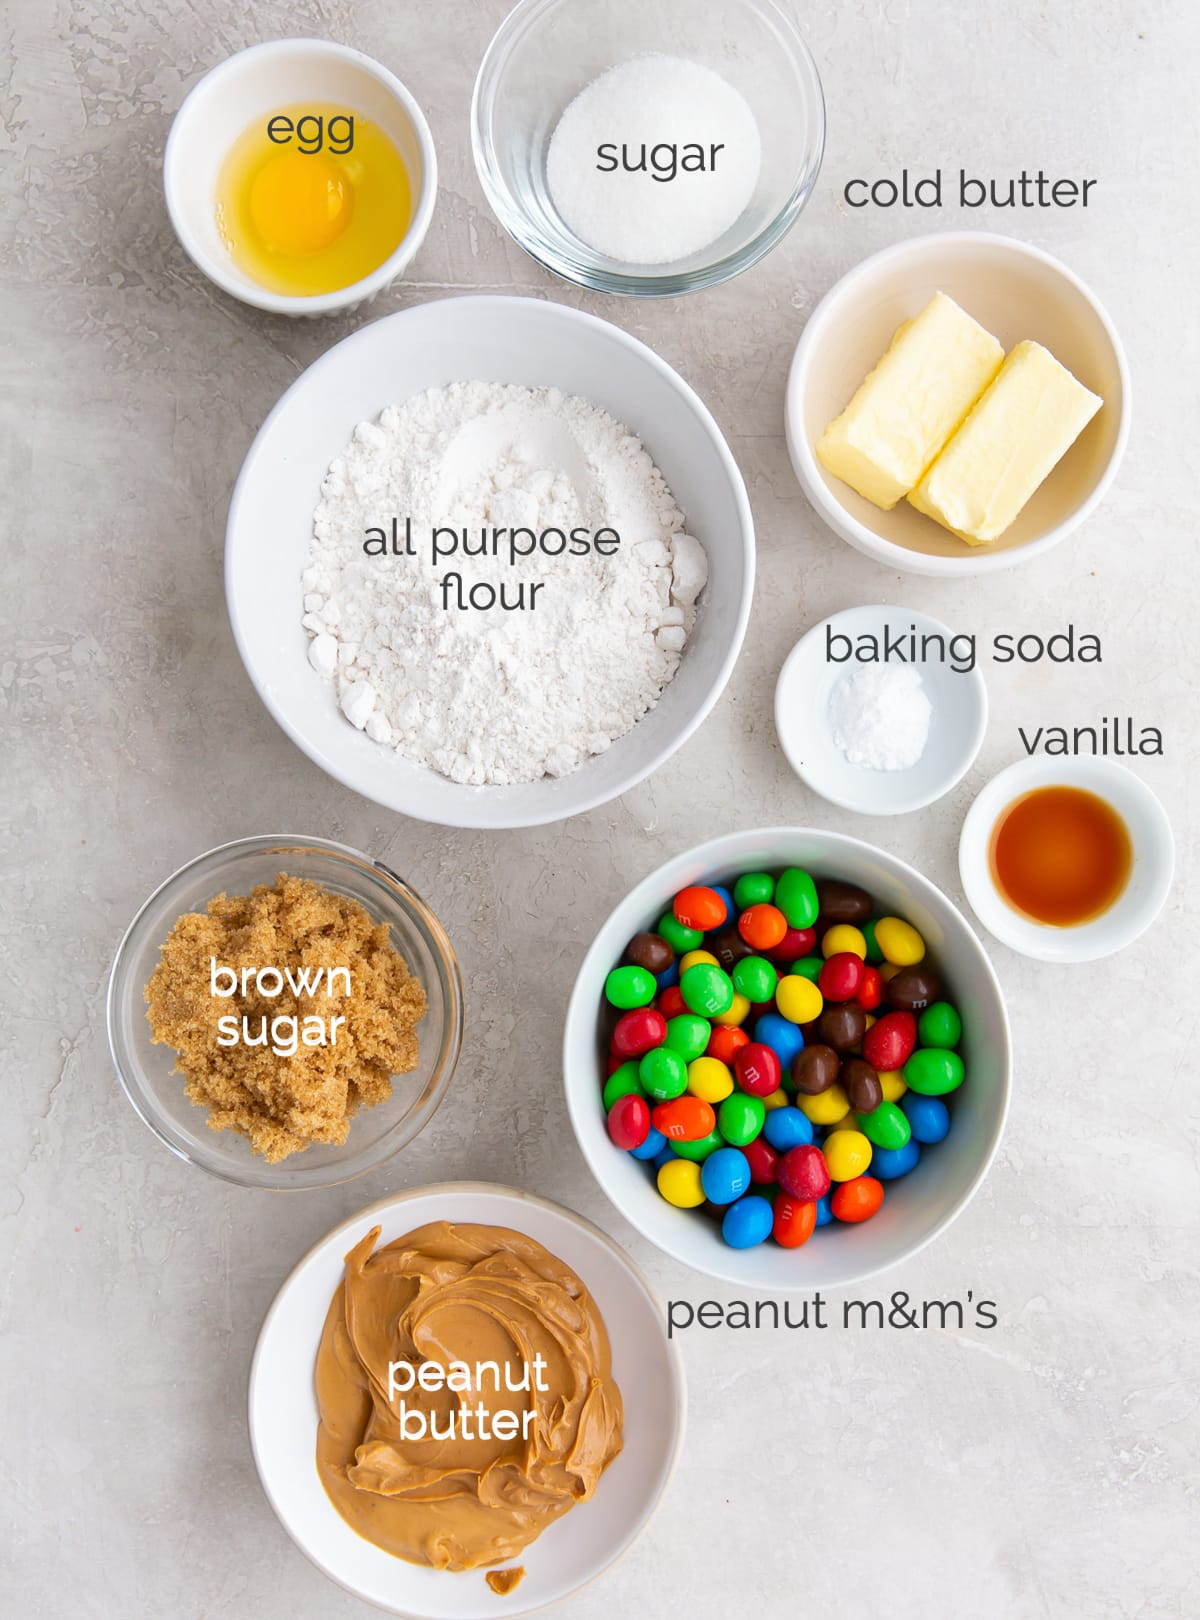 peanut m&m cookie ingredients in bowls labeled with text